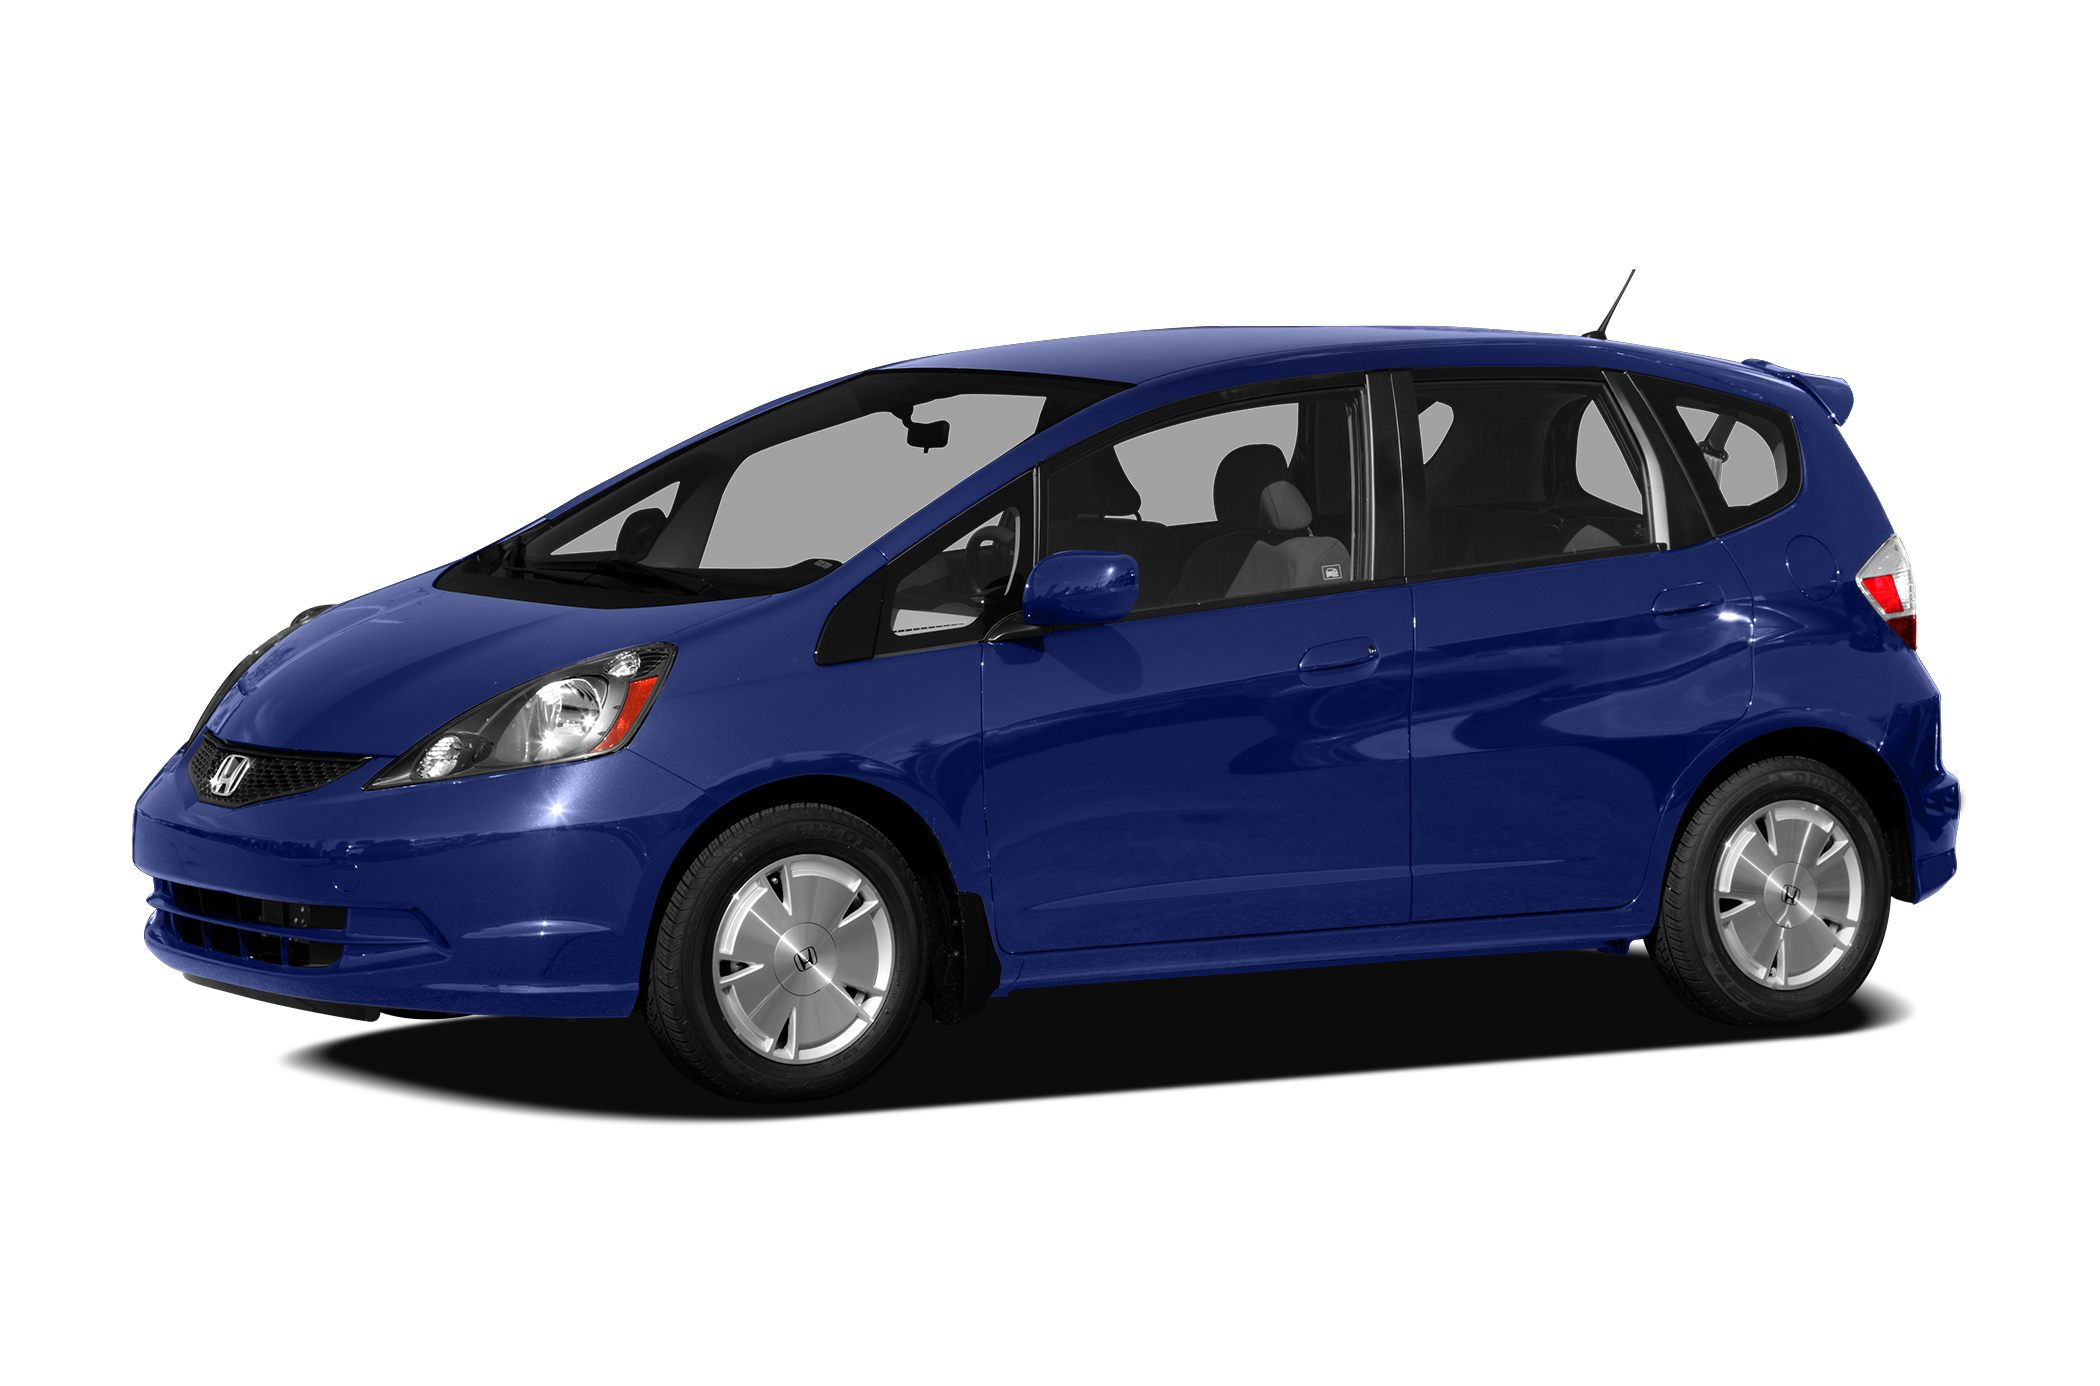 2009 Honda Fit Base OUR PRICESYoure probably wondering why our prices are so much lower than the